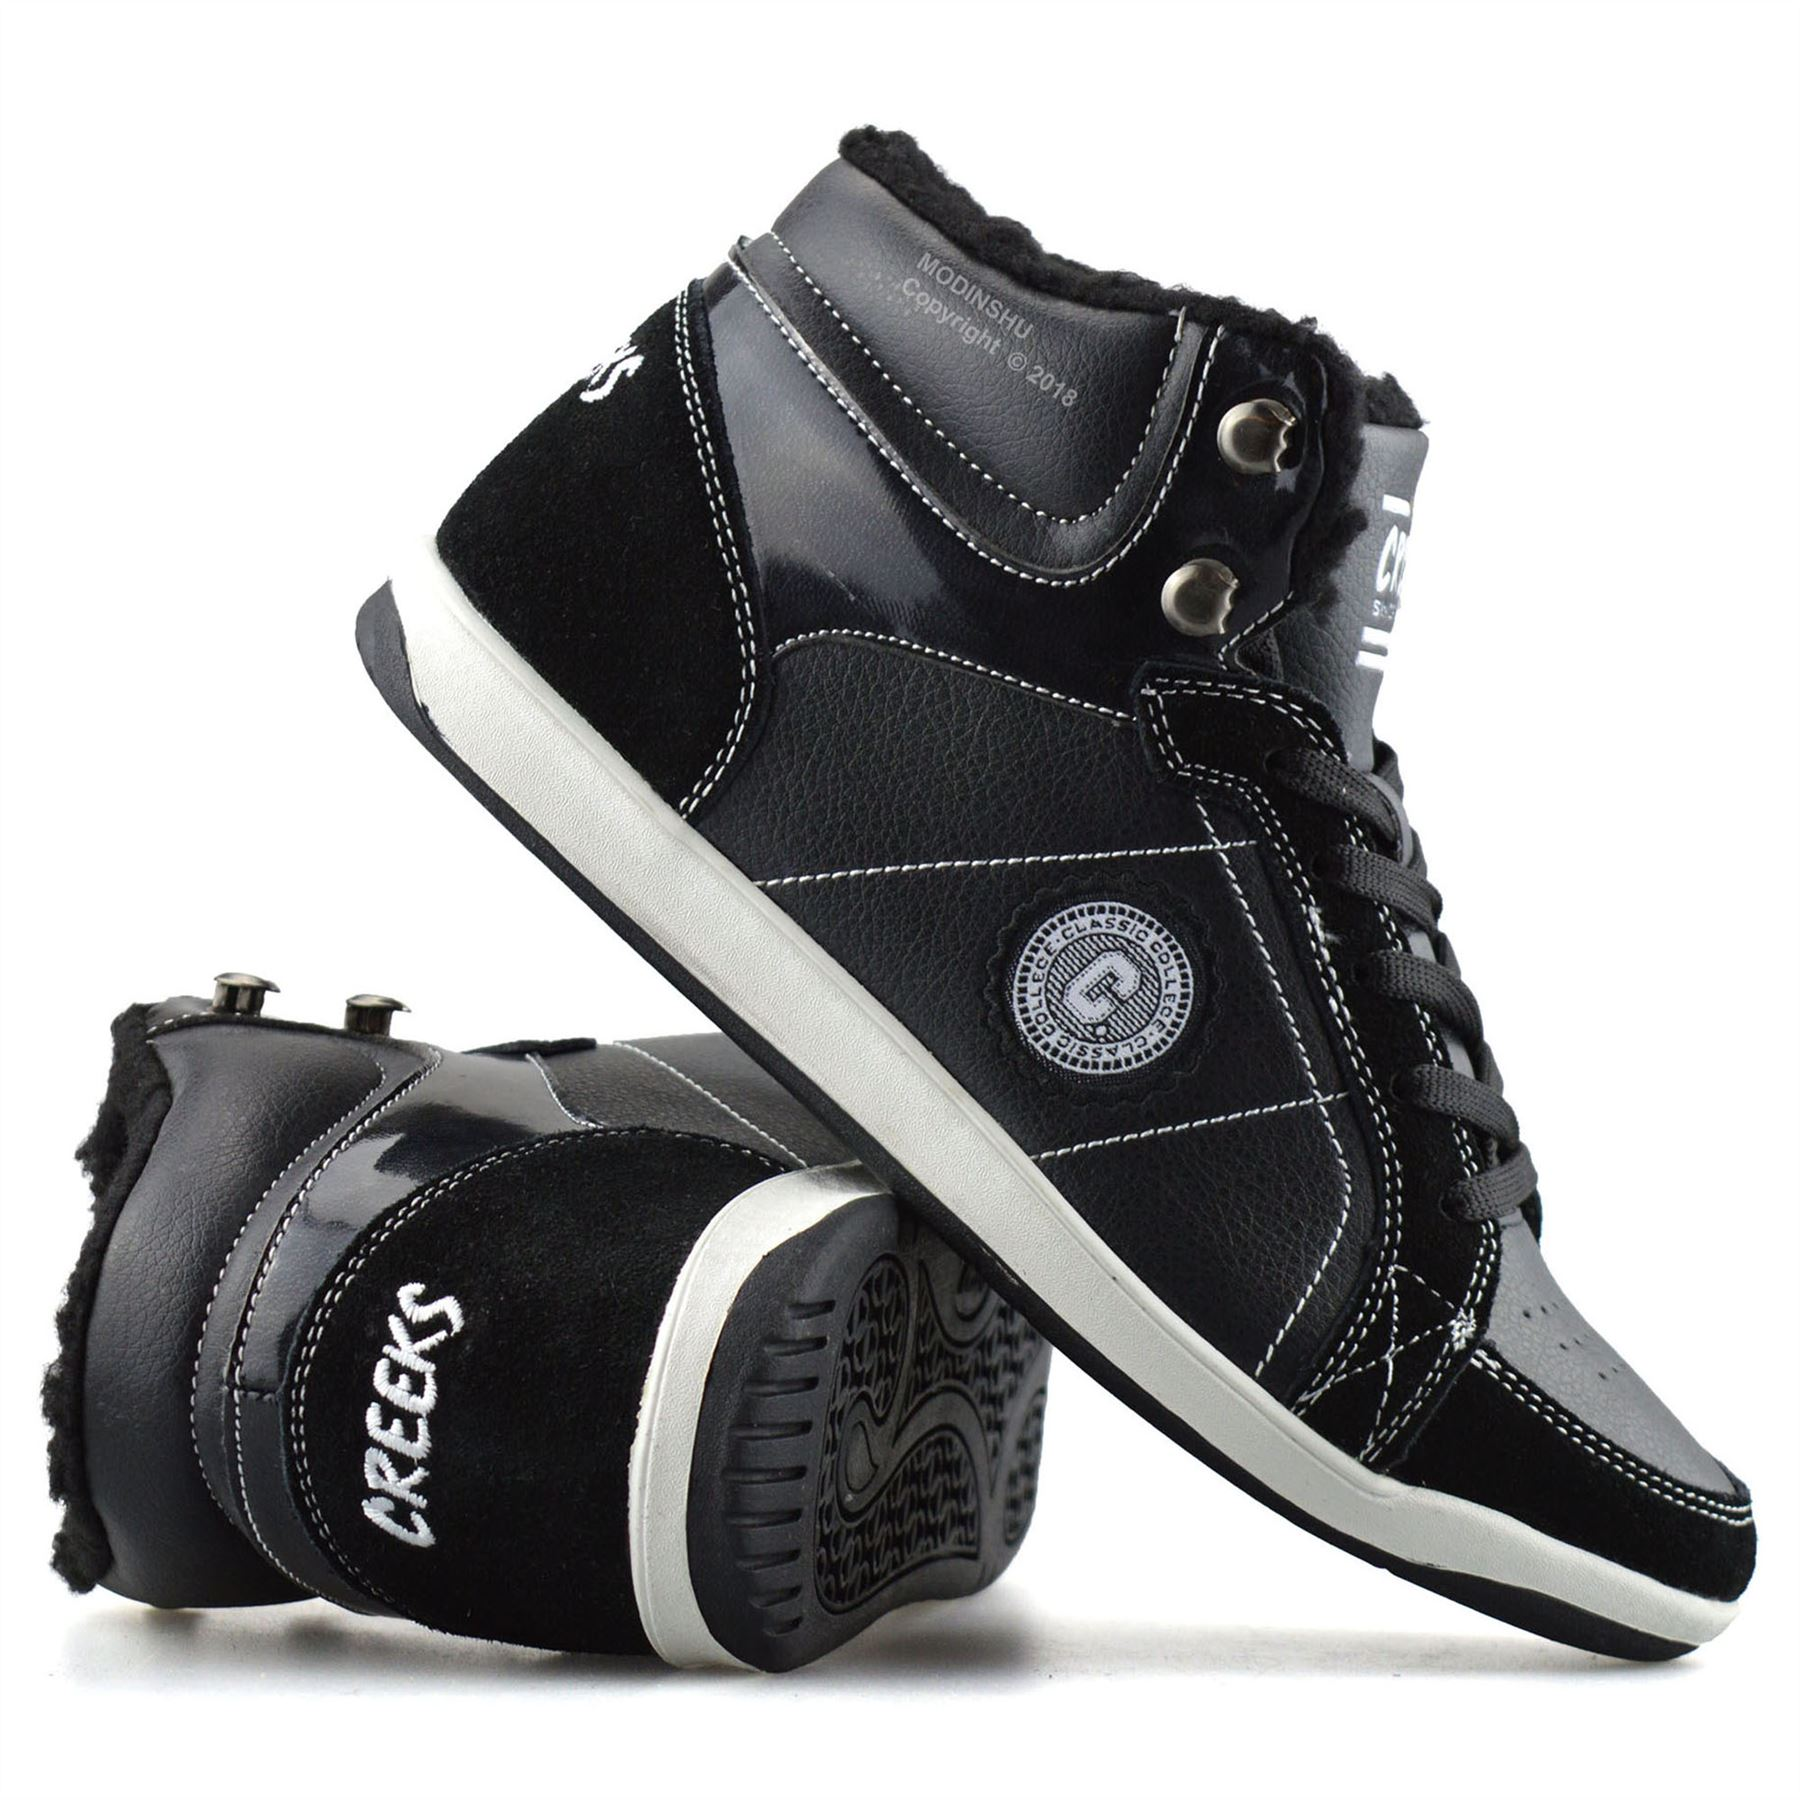 BOYS GIRLS WARM FLEECE LINED HIGH TOP SPORTS TRAINERS HI TOPS ANKLE BOOTS SHOES